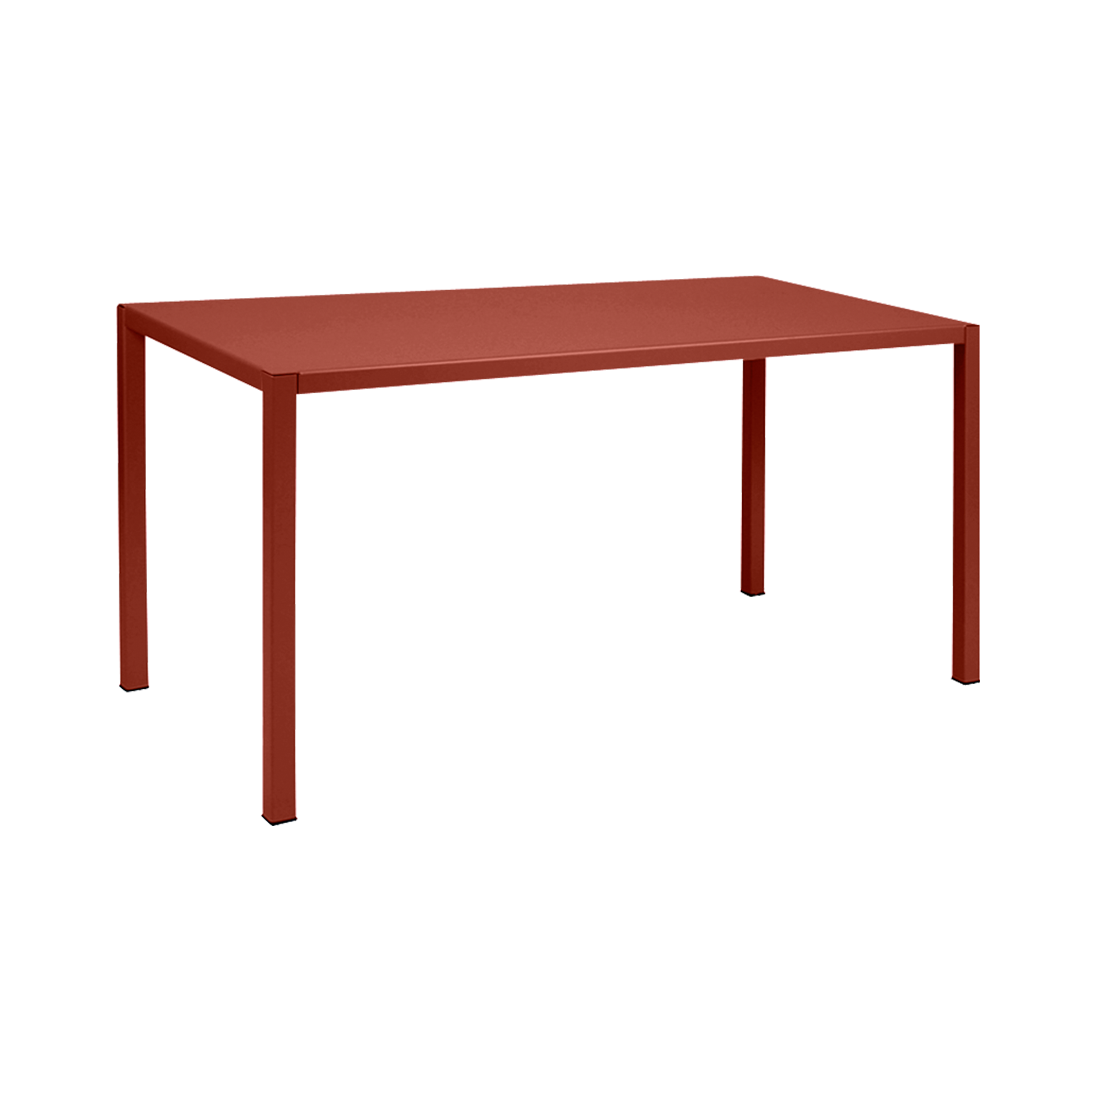 Table 140 x 70 cm inside out ocre rouge